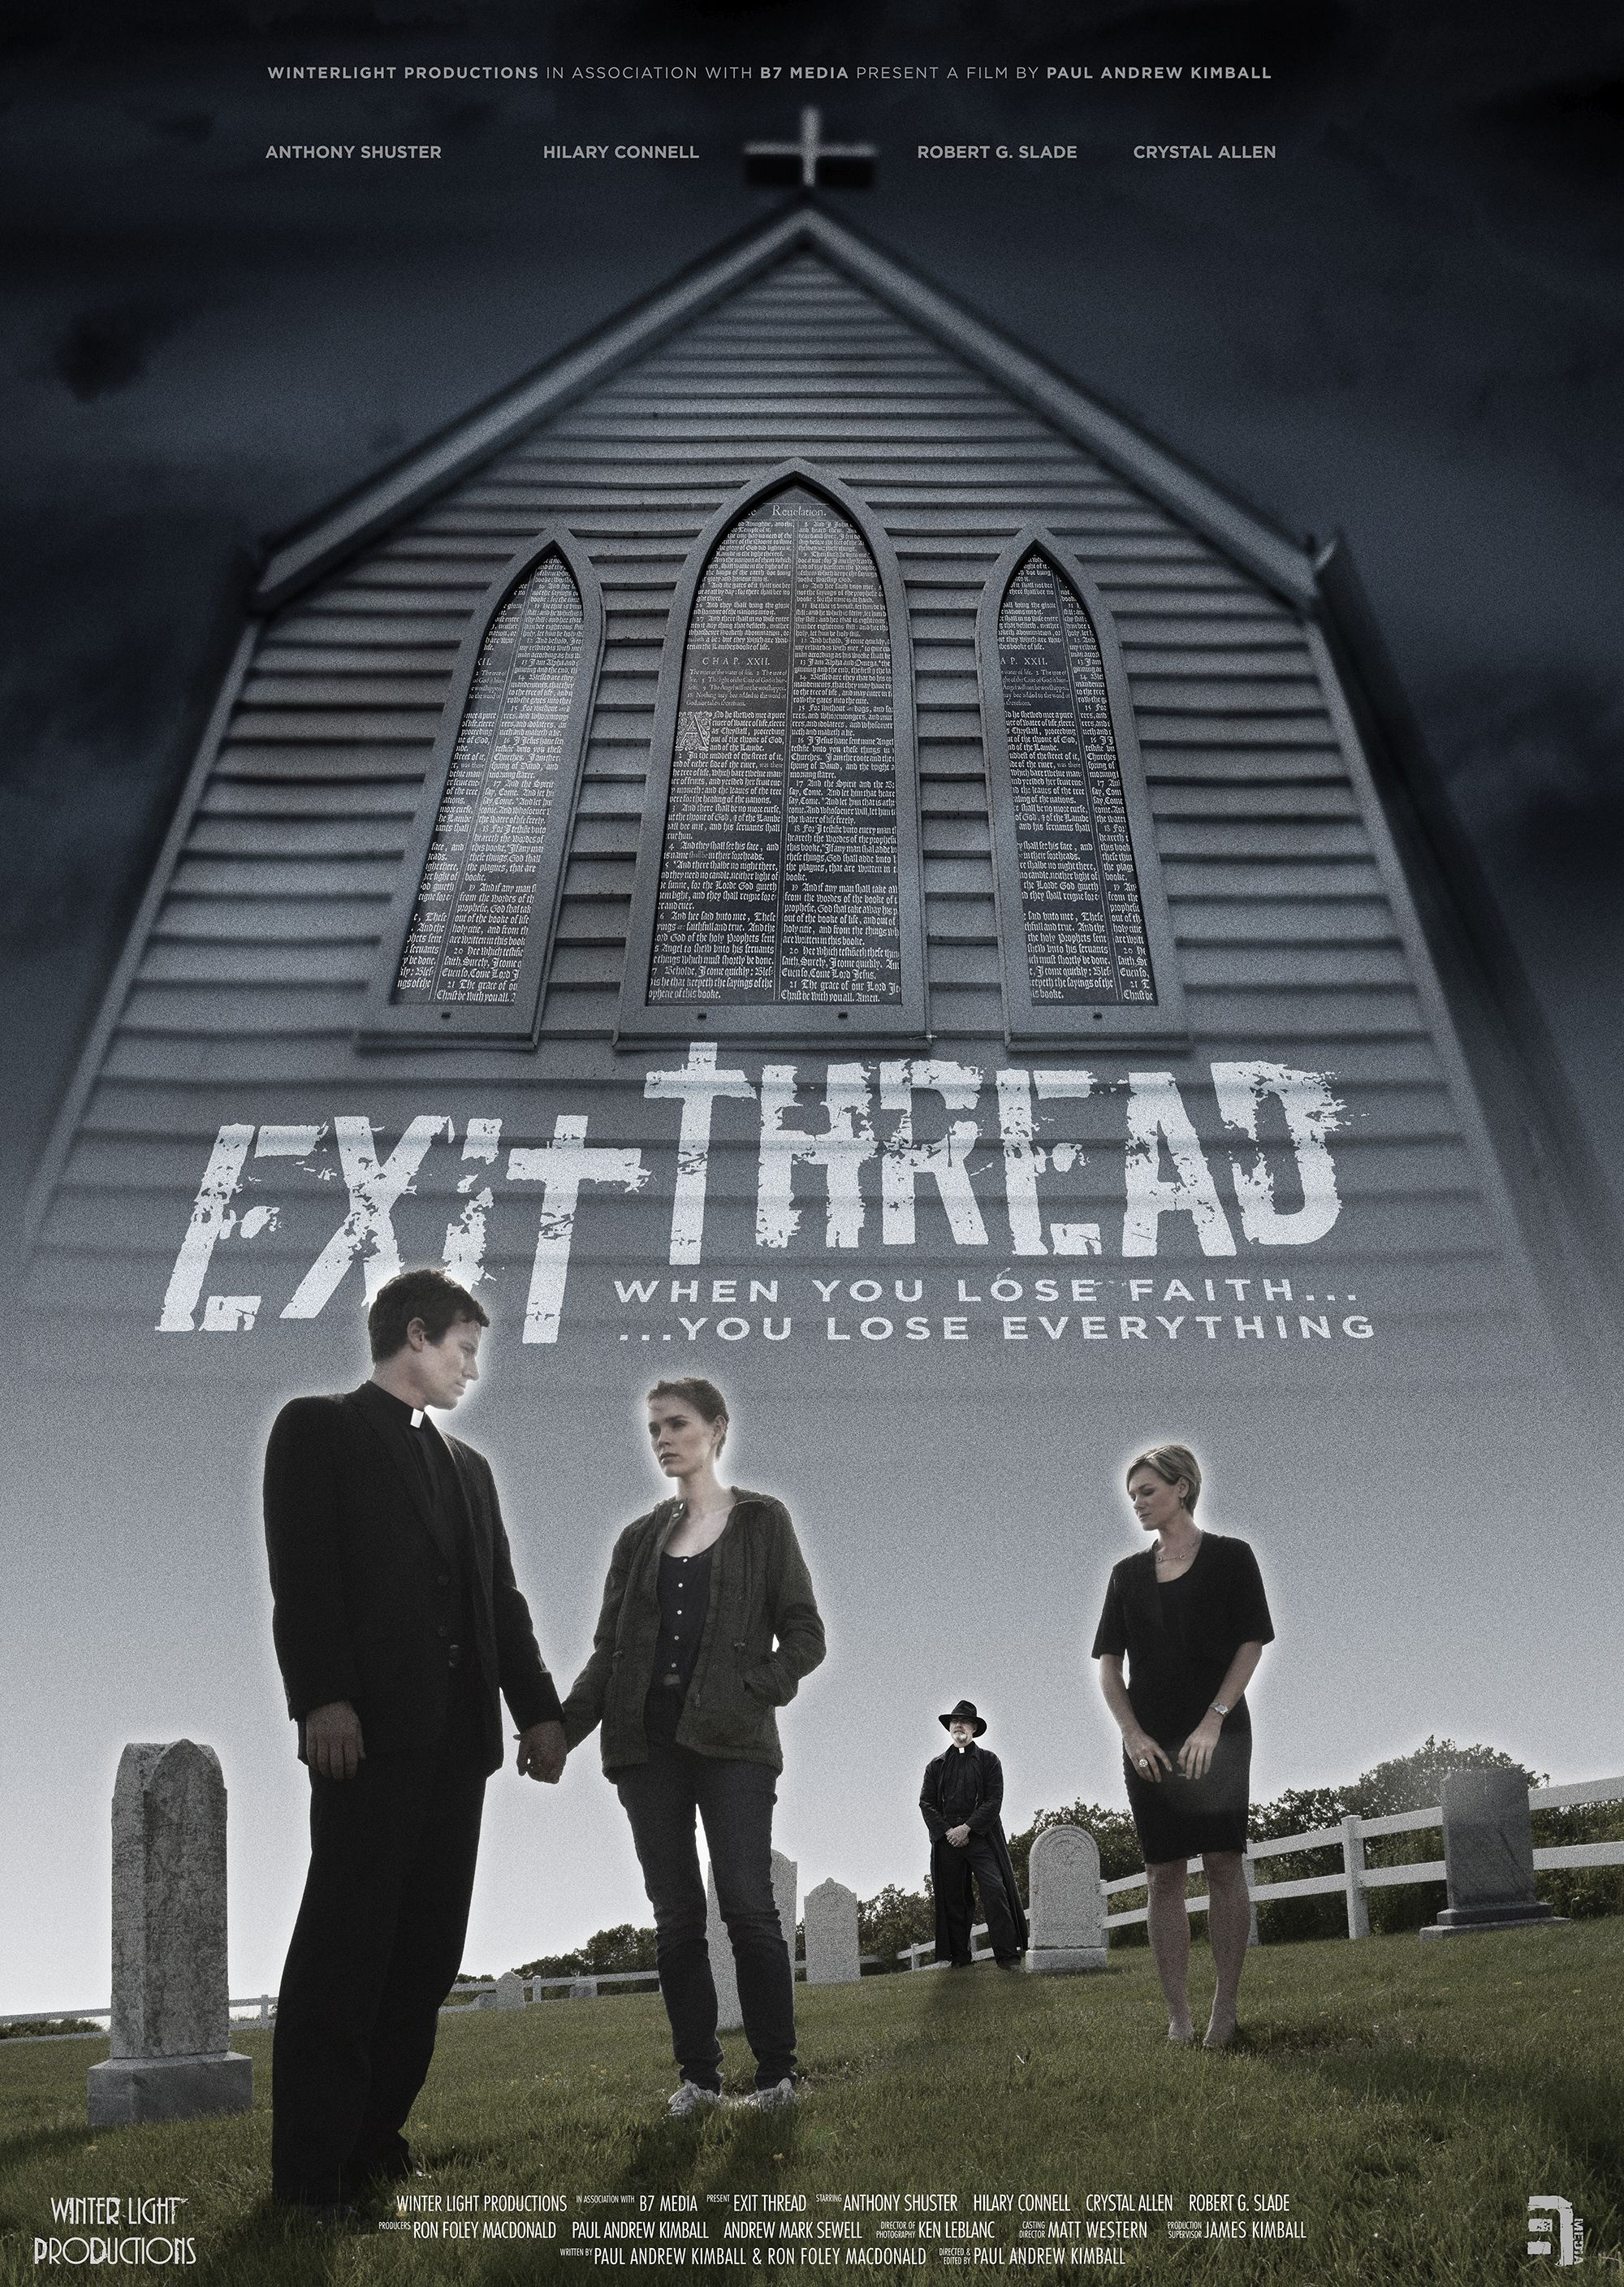 The poster for my film Exit Thread, due for release in the Spring of 2016.